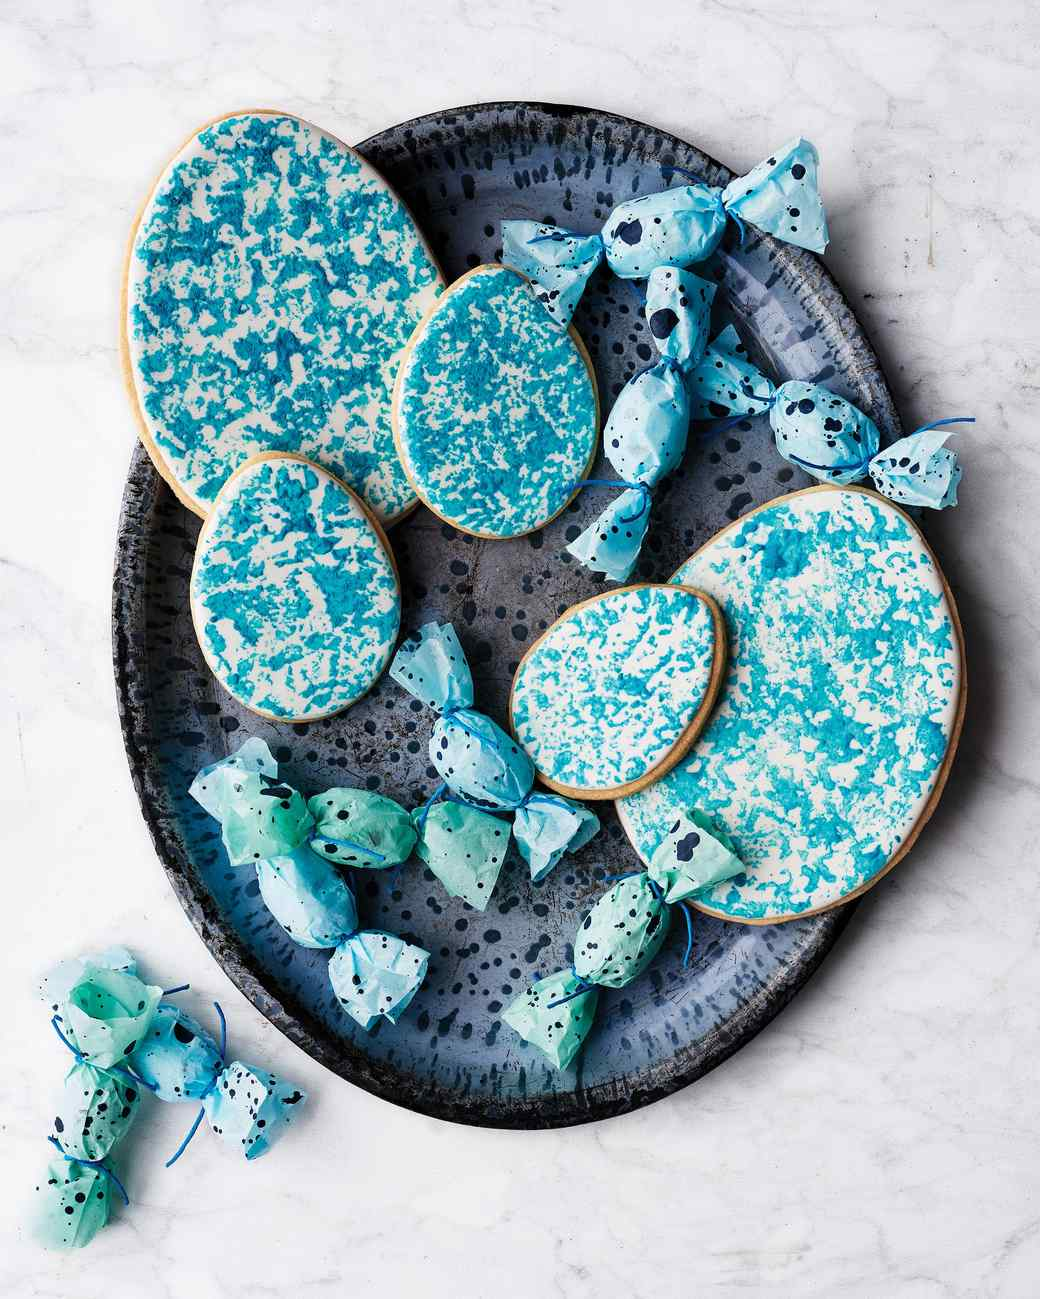 Sponge-Painted Easter Egg Cookies